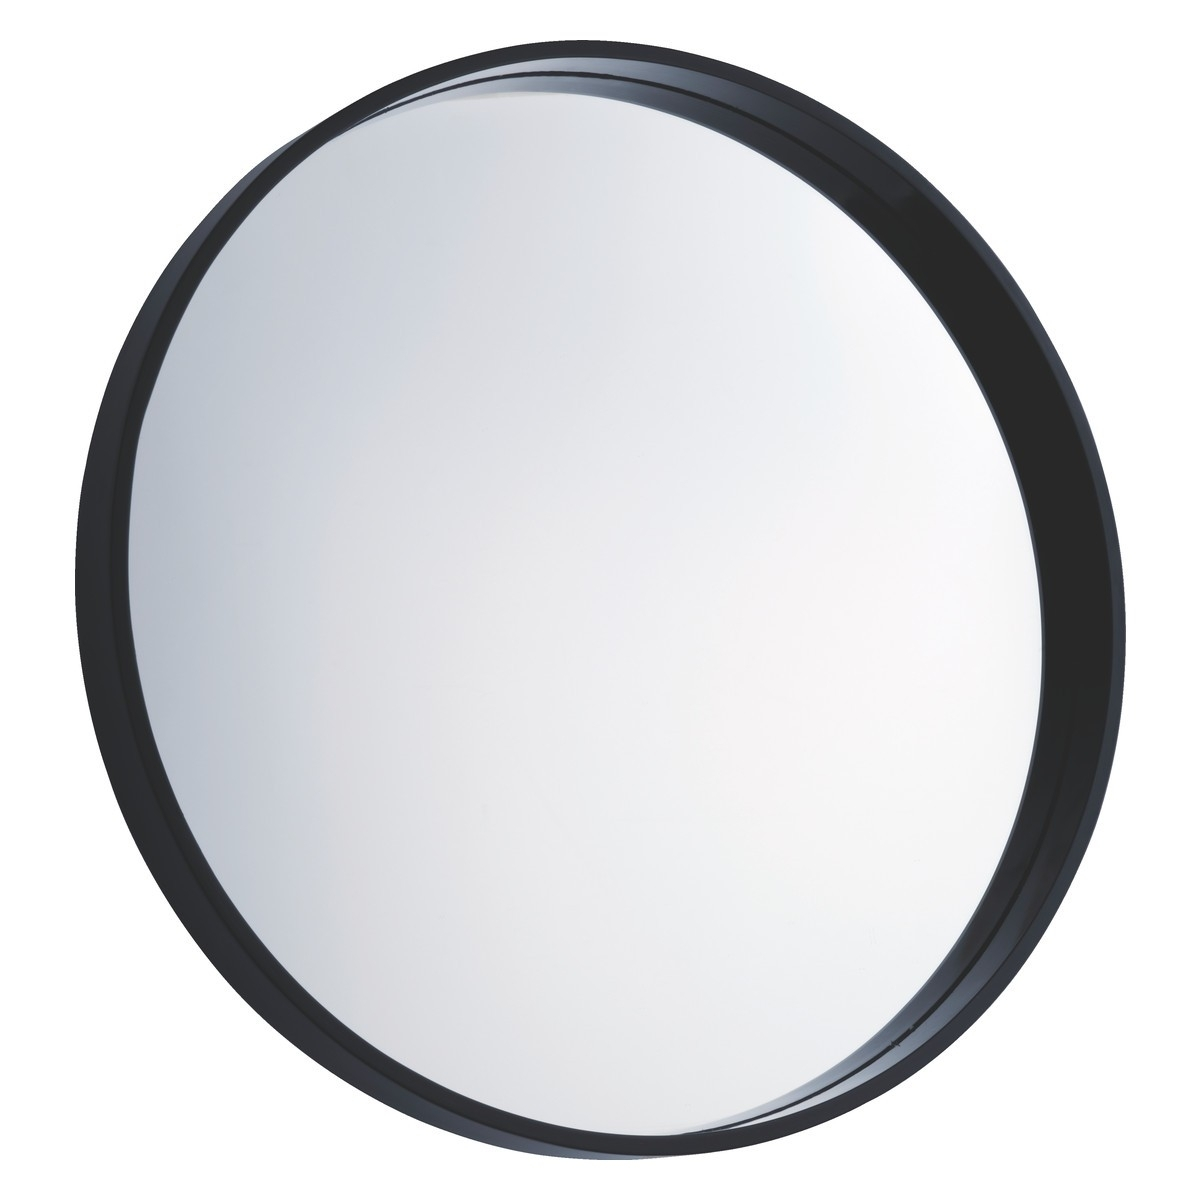 Large Round Black Wall Mirror